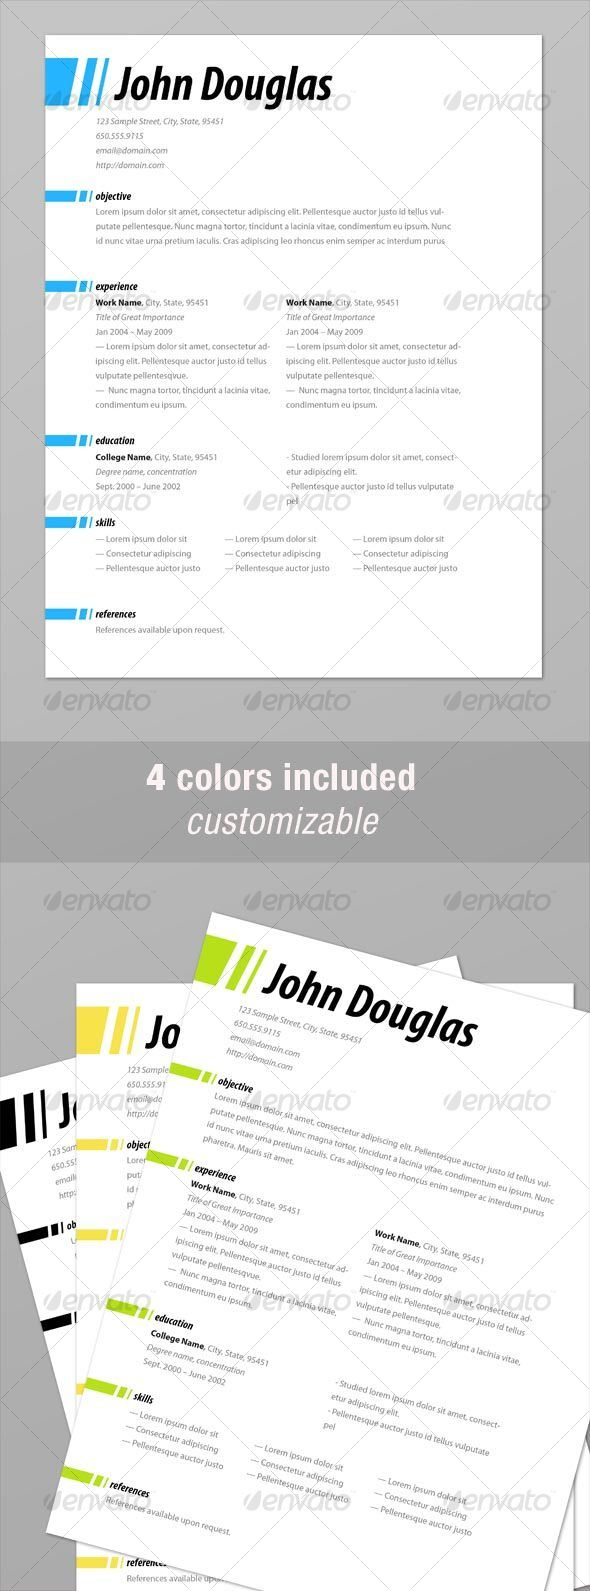 Modern Clean Scannable Resume Templates Indesign  MaggiLocustdesignCo